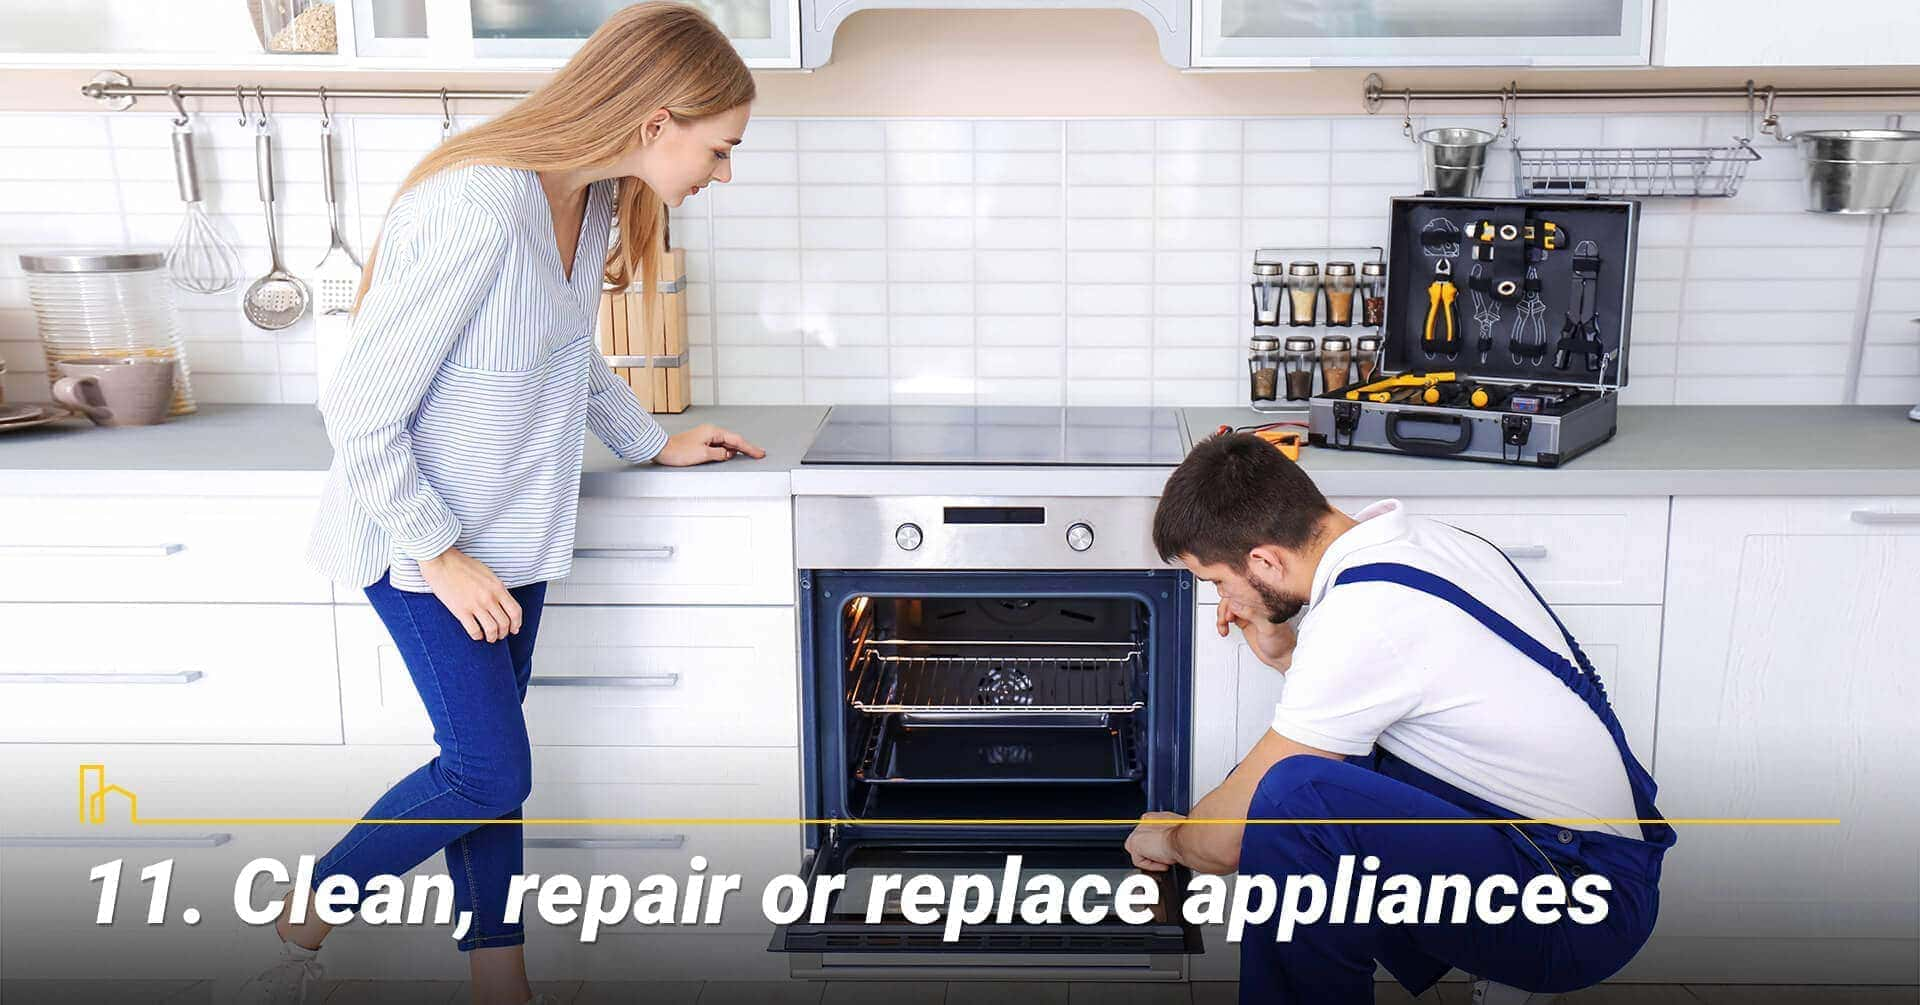 Clean, repair or replace appliances, keep appliances working properly